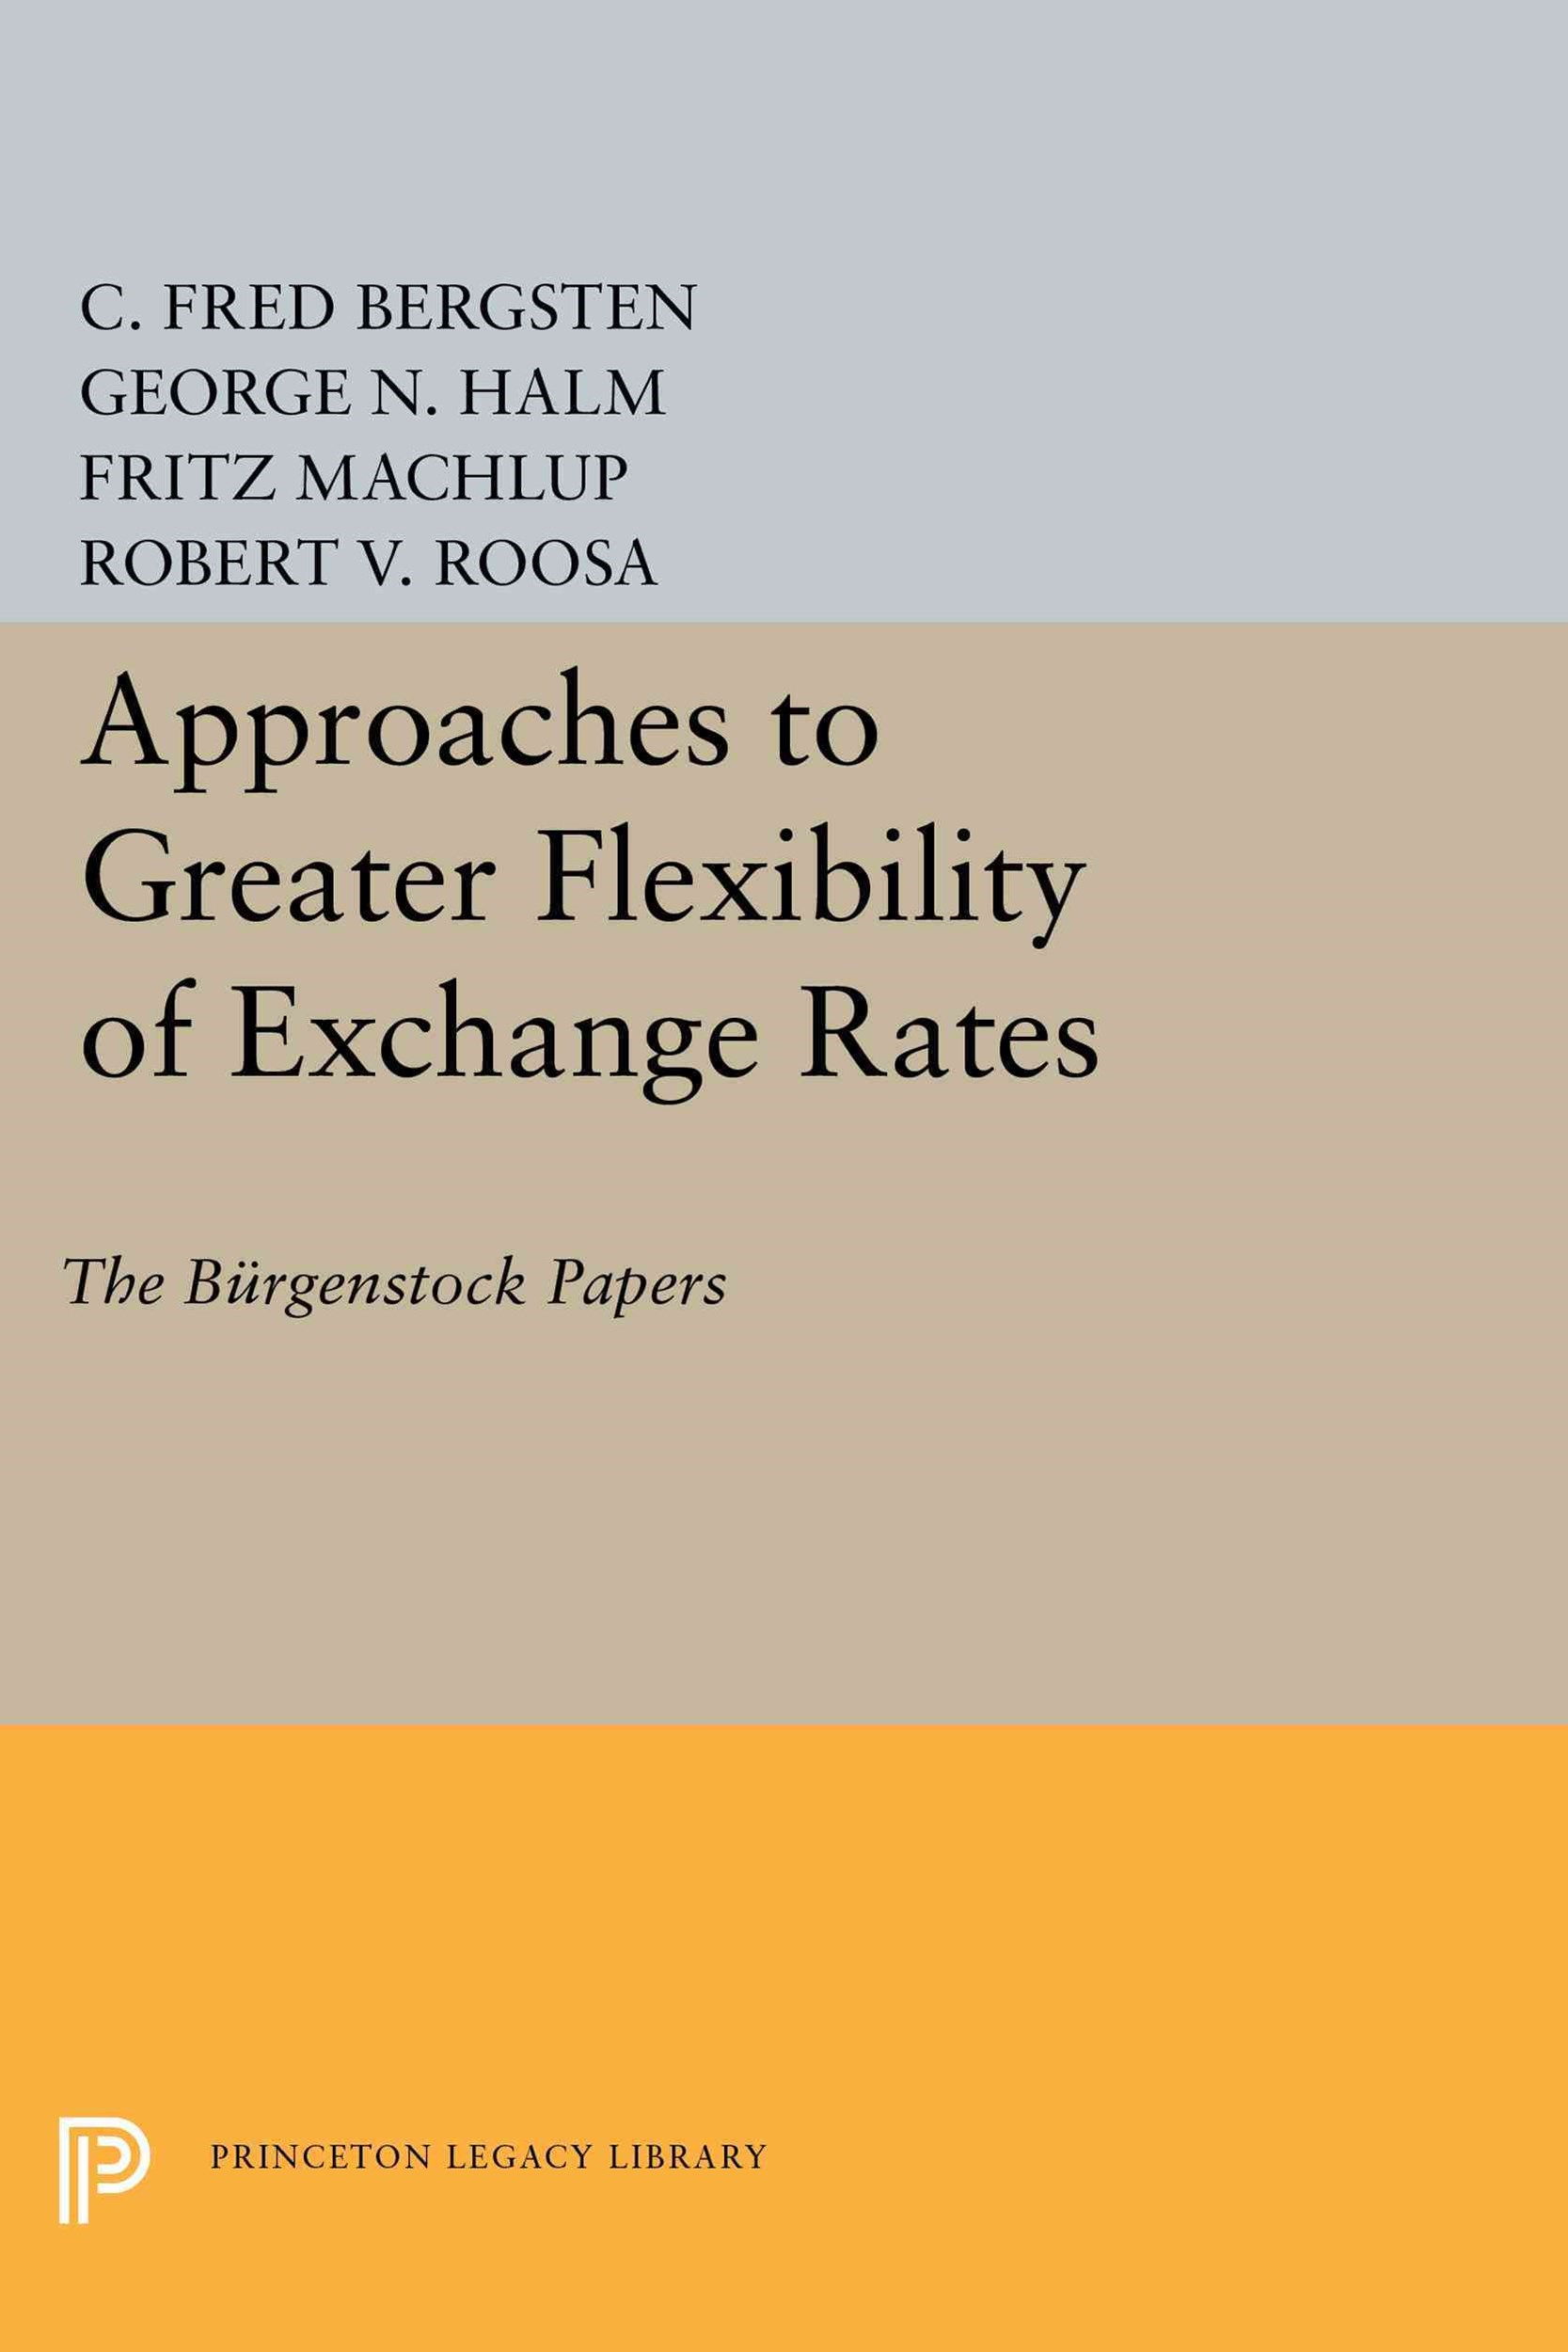 Approaches to Greater Flexibility of Exchange Rates